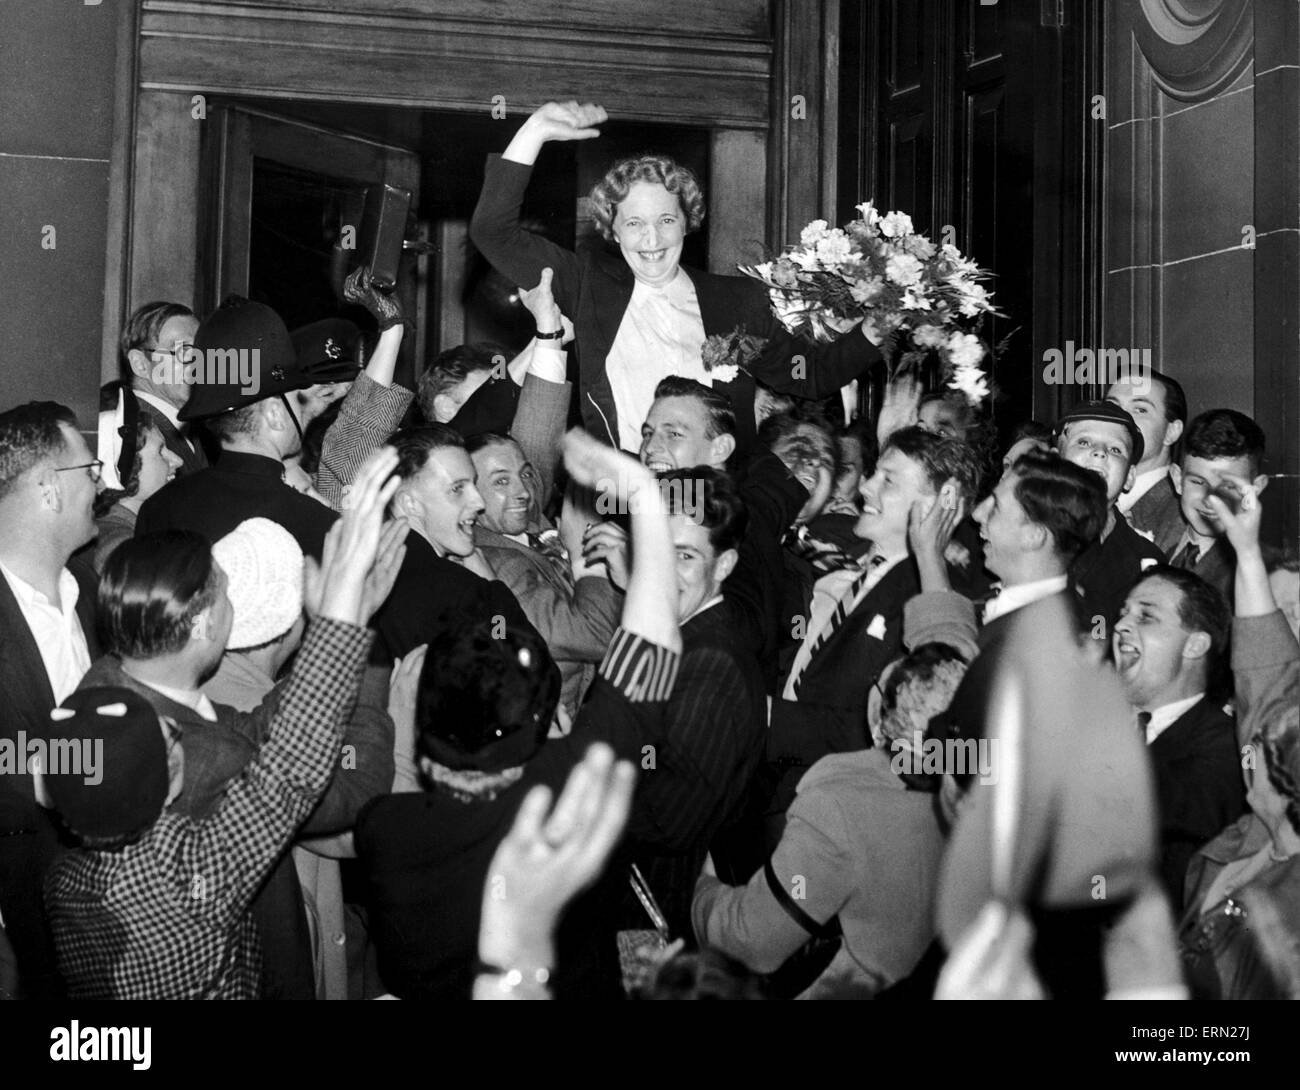 Edith Pitt, Conservative MP for Edgbaston is cheered by supporters after results are announced, Birmingham, 3rd - Stock Image